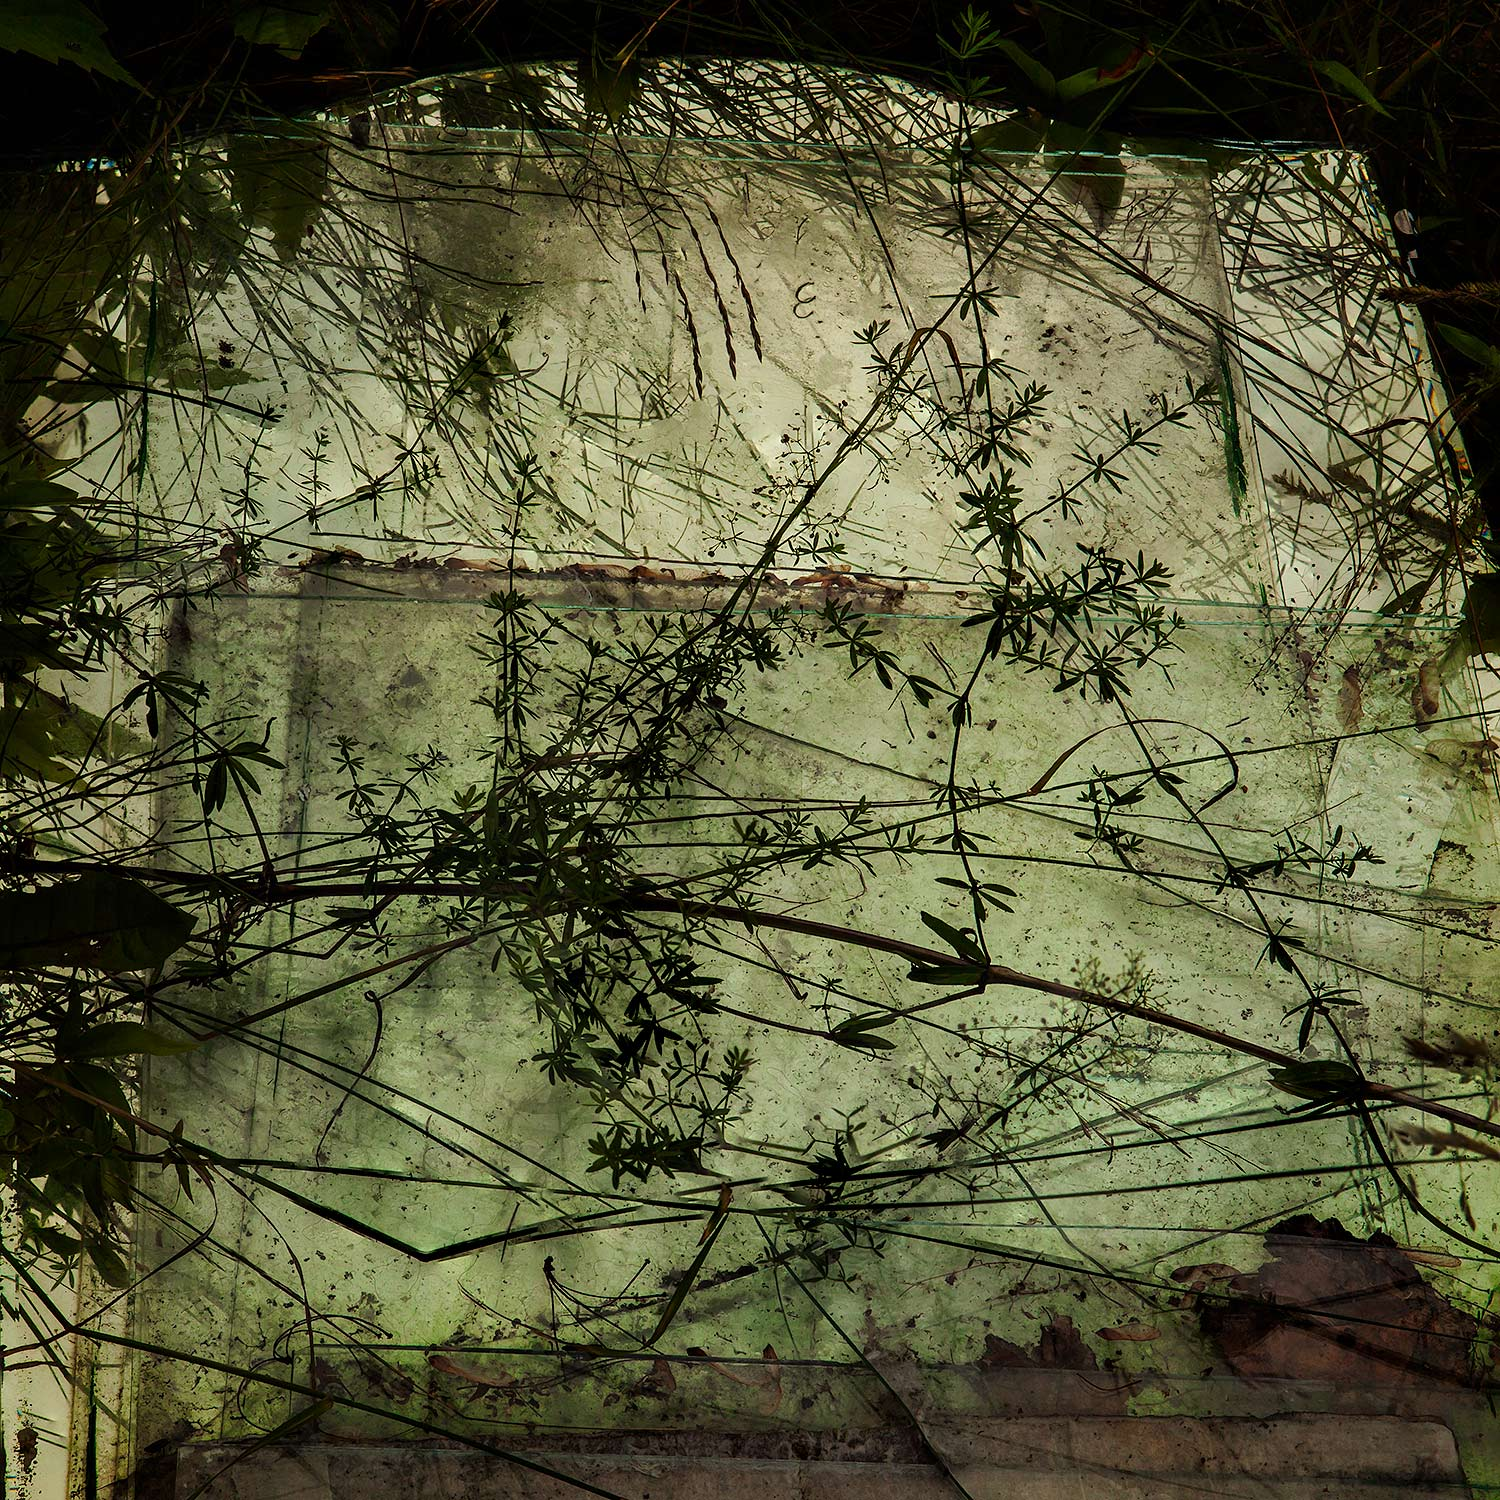 Weeds and Glass, Bar Harbor, Maine, 2014